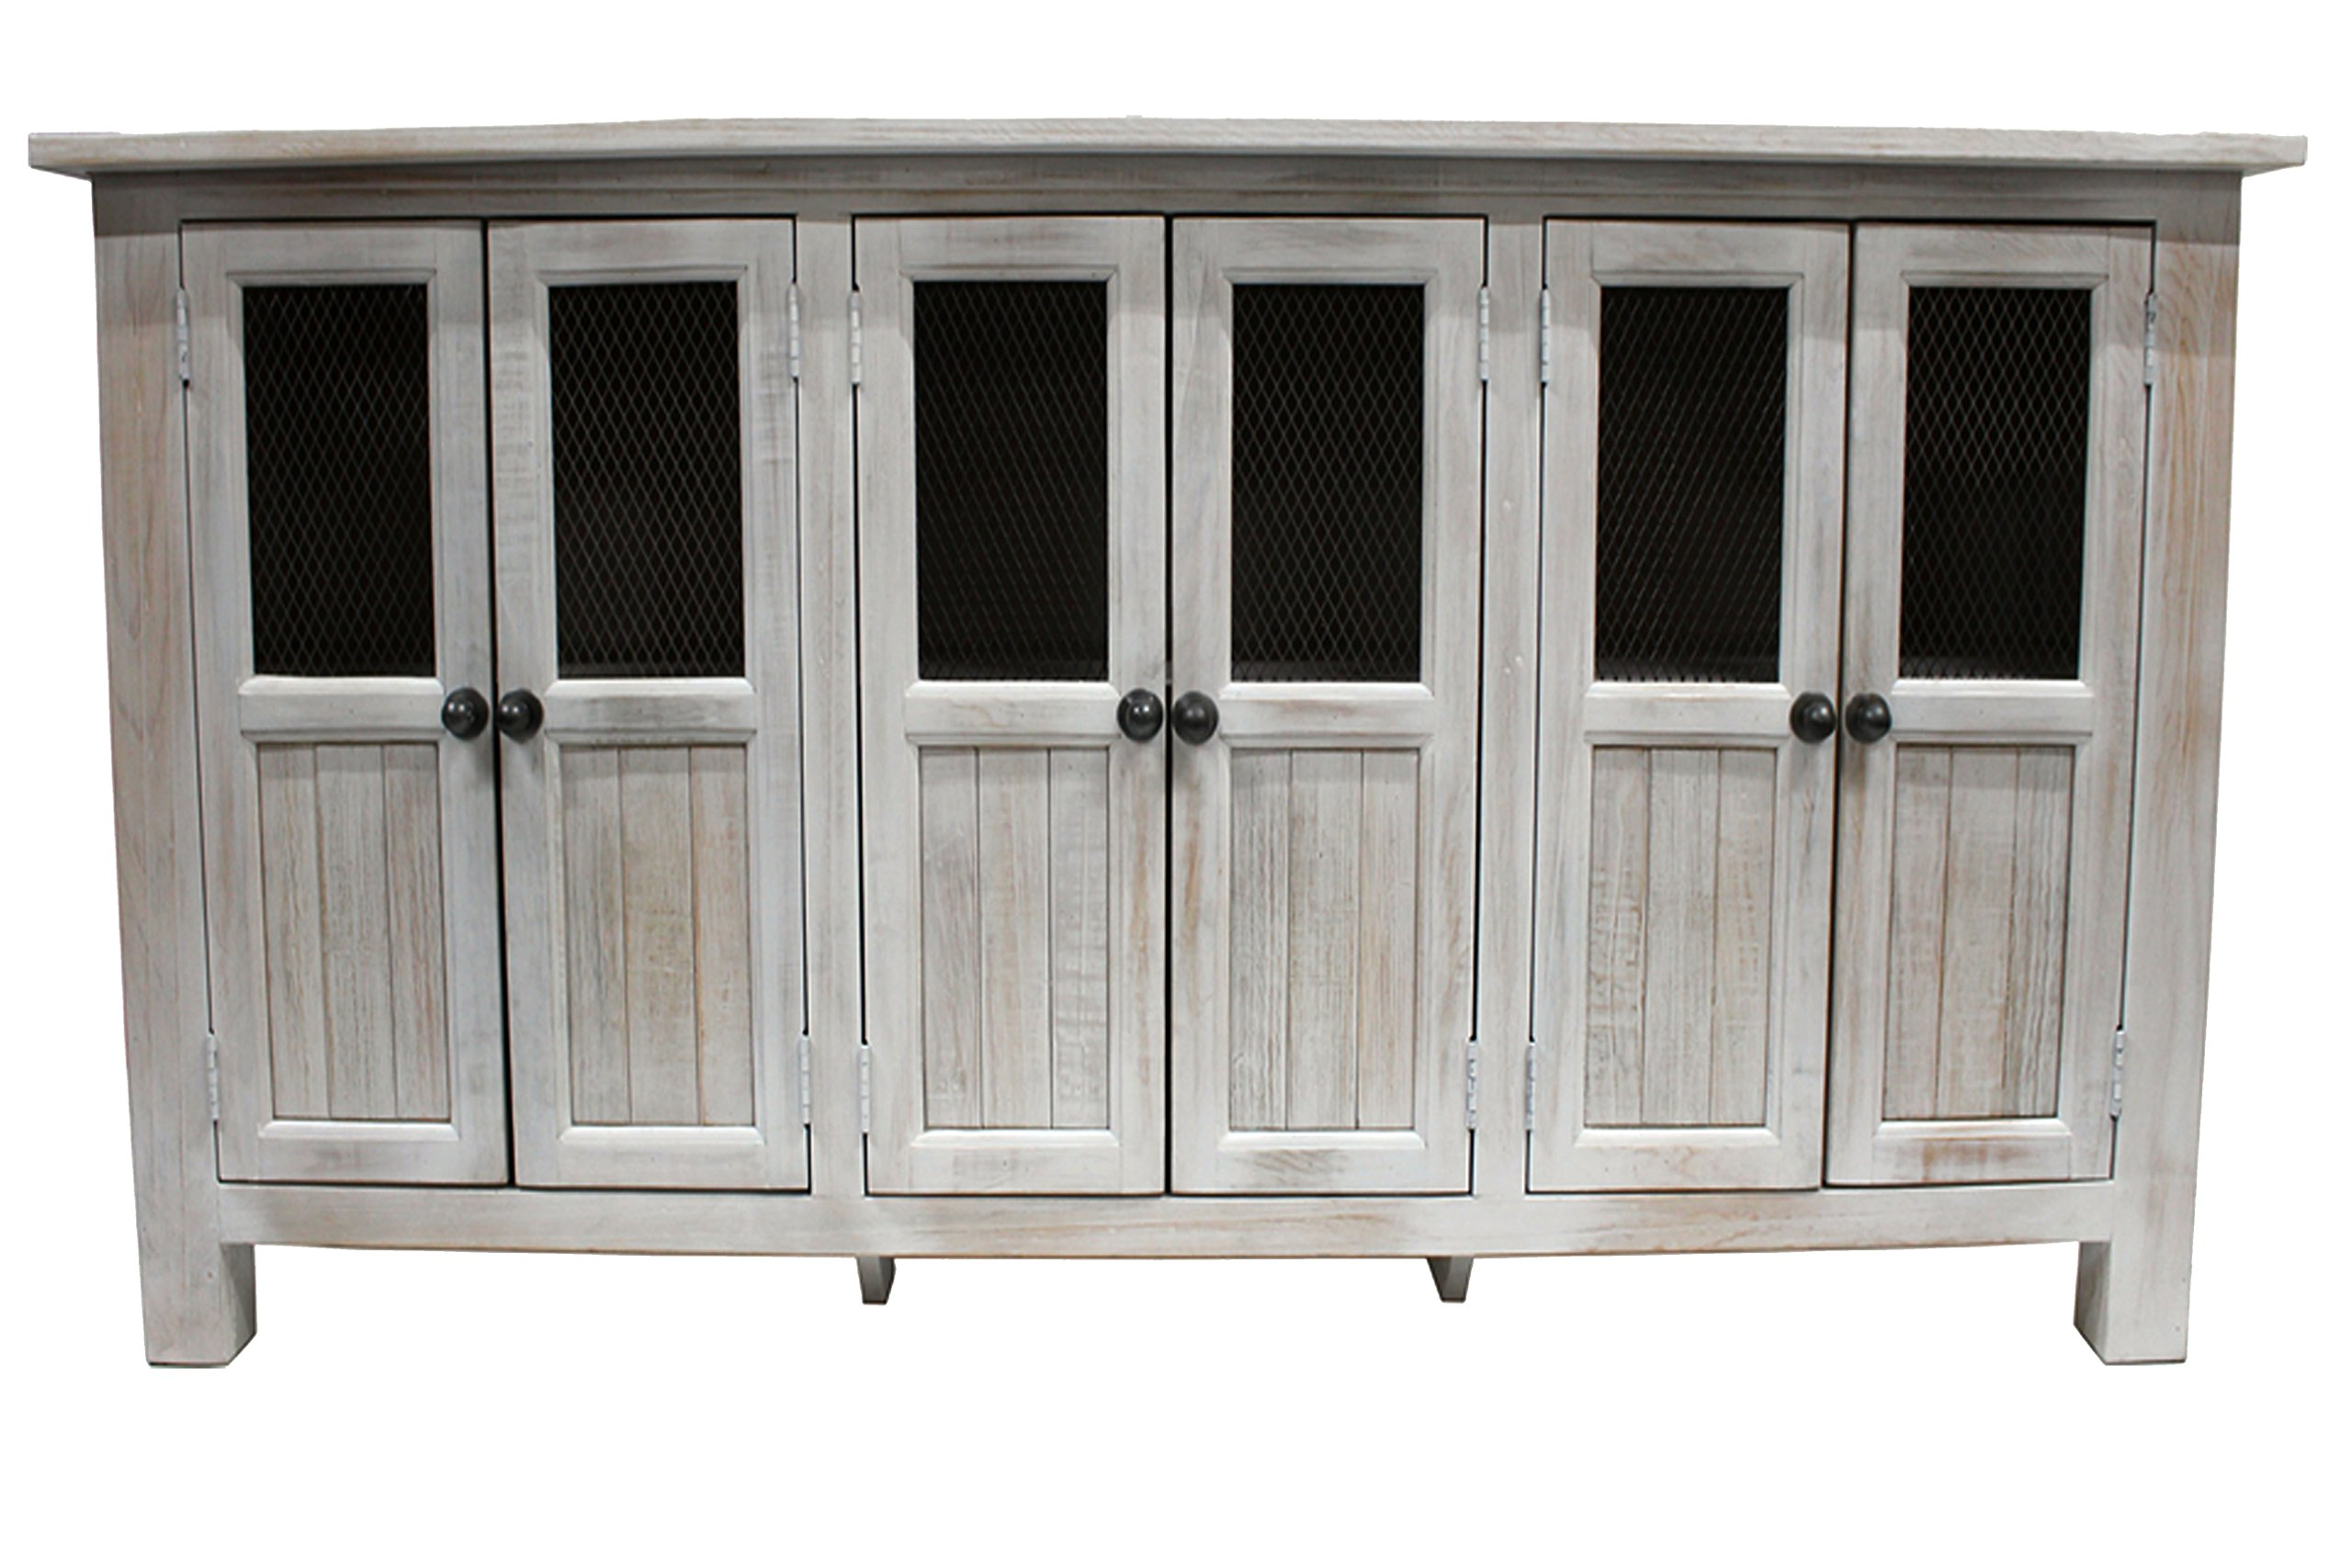 Crafters and Weavers Gaines 6 Door Sideboard, Media Console - Distressed White - Brushed and distressed subtle White finish Solid pine wood 6 Doors with mesh doors (allows remote access to electronics) - sideboards-buffets, kitchen-dining-room-furniture, kitchen-dining-room - 81rHJzFylhL -